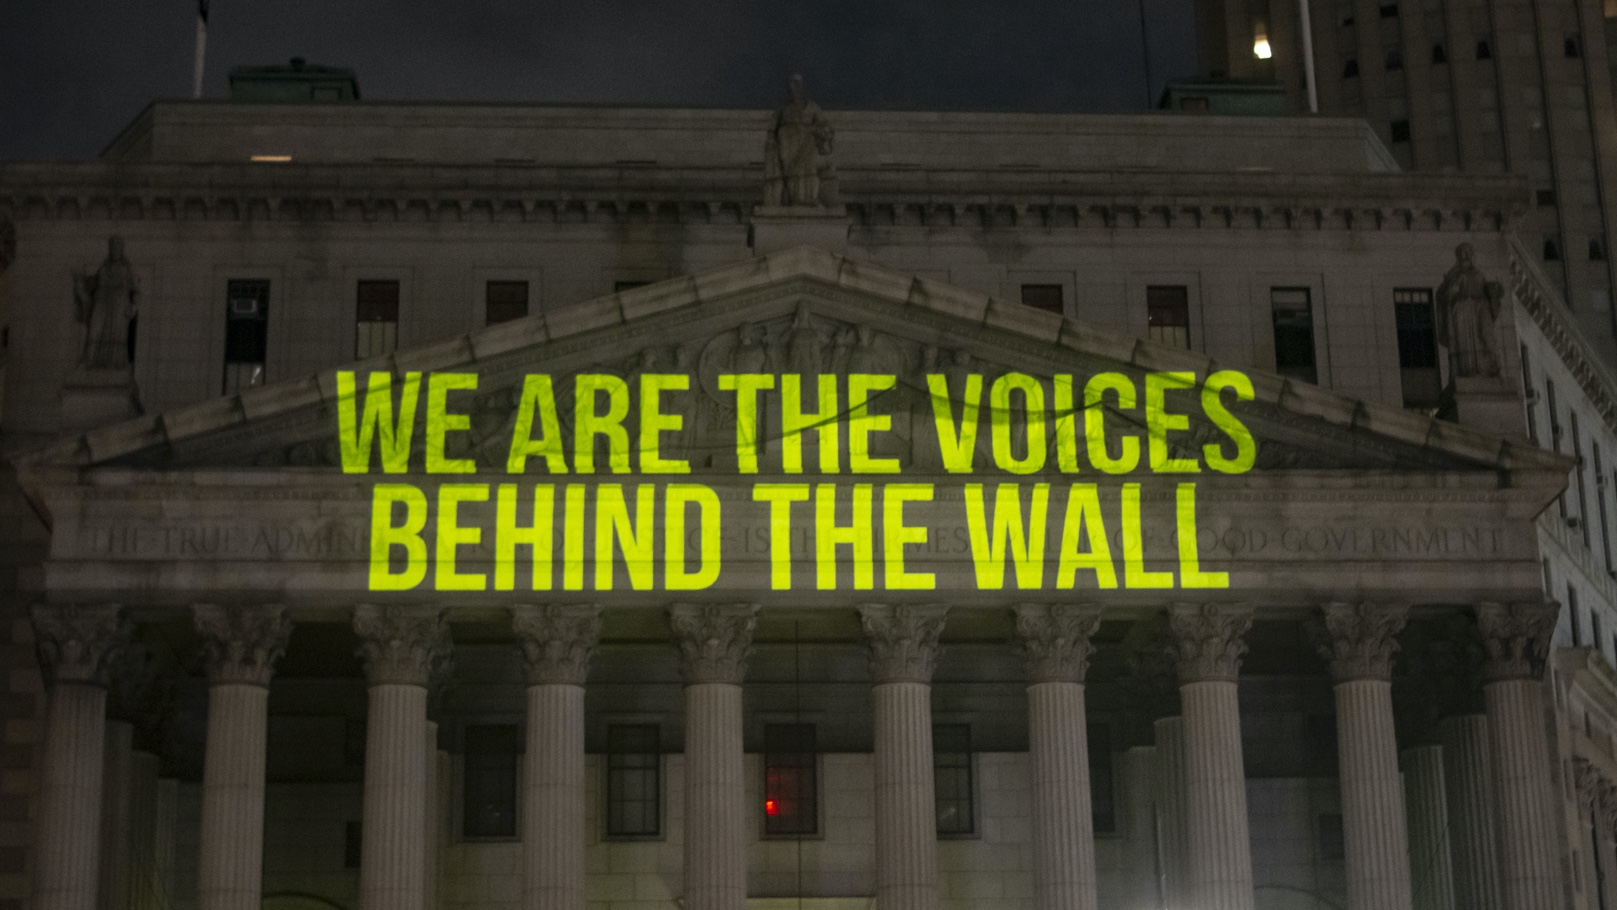 """The words """"we are the voices behind the wall"""" being projected in bright green on the building"""